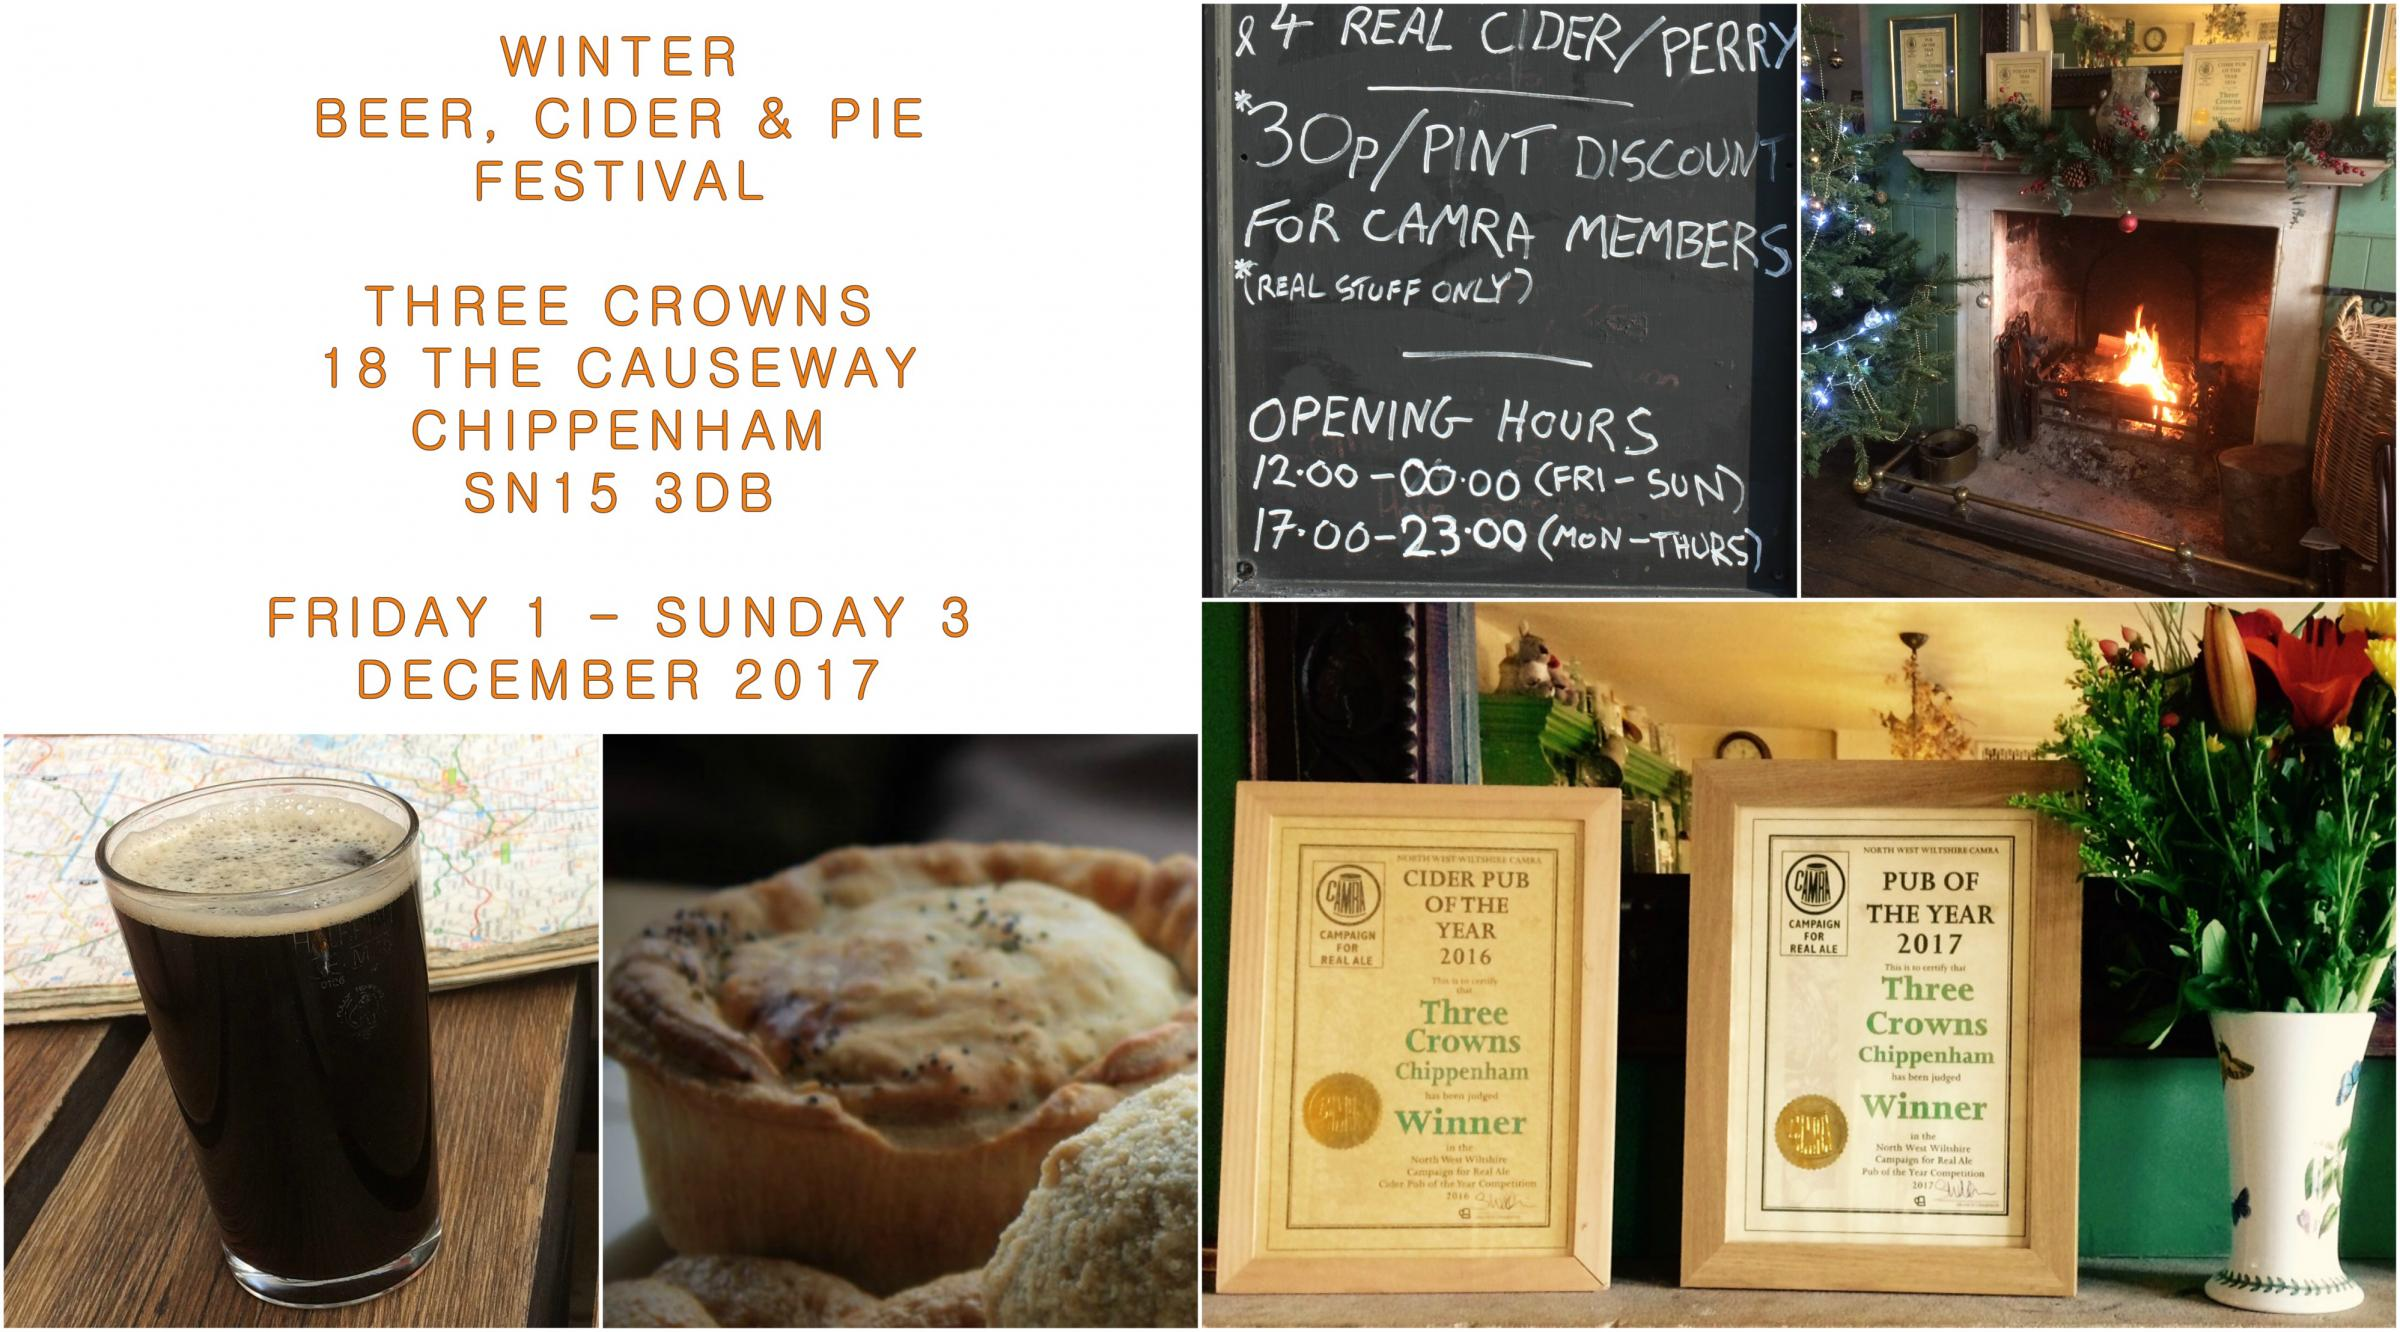 Winter Beer, Cider & Pie Festival